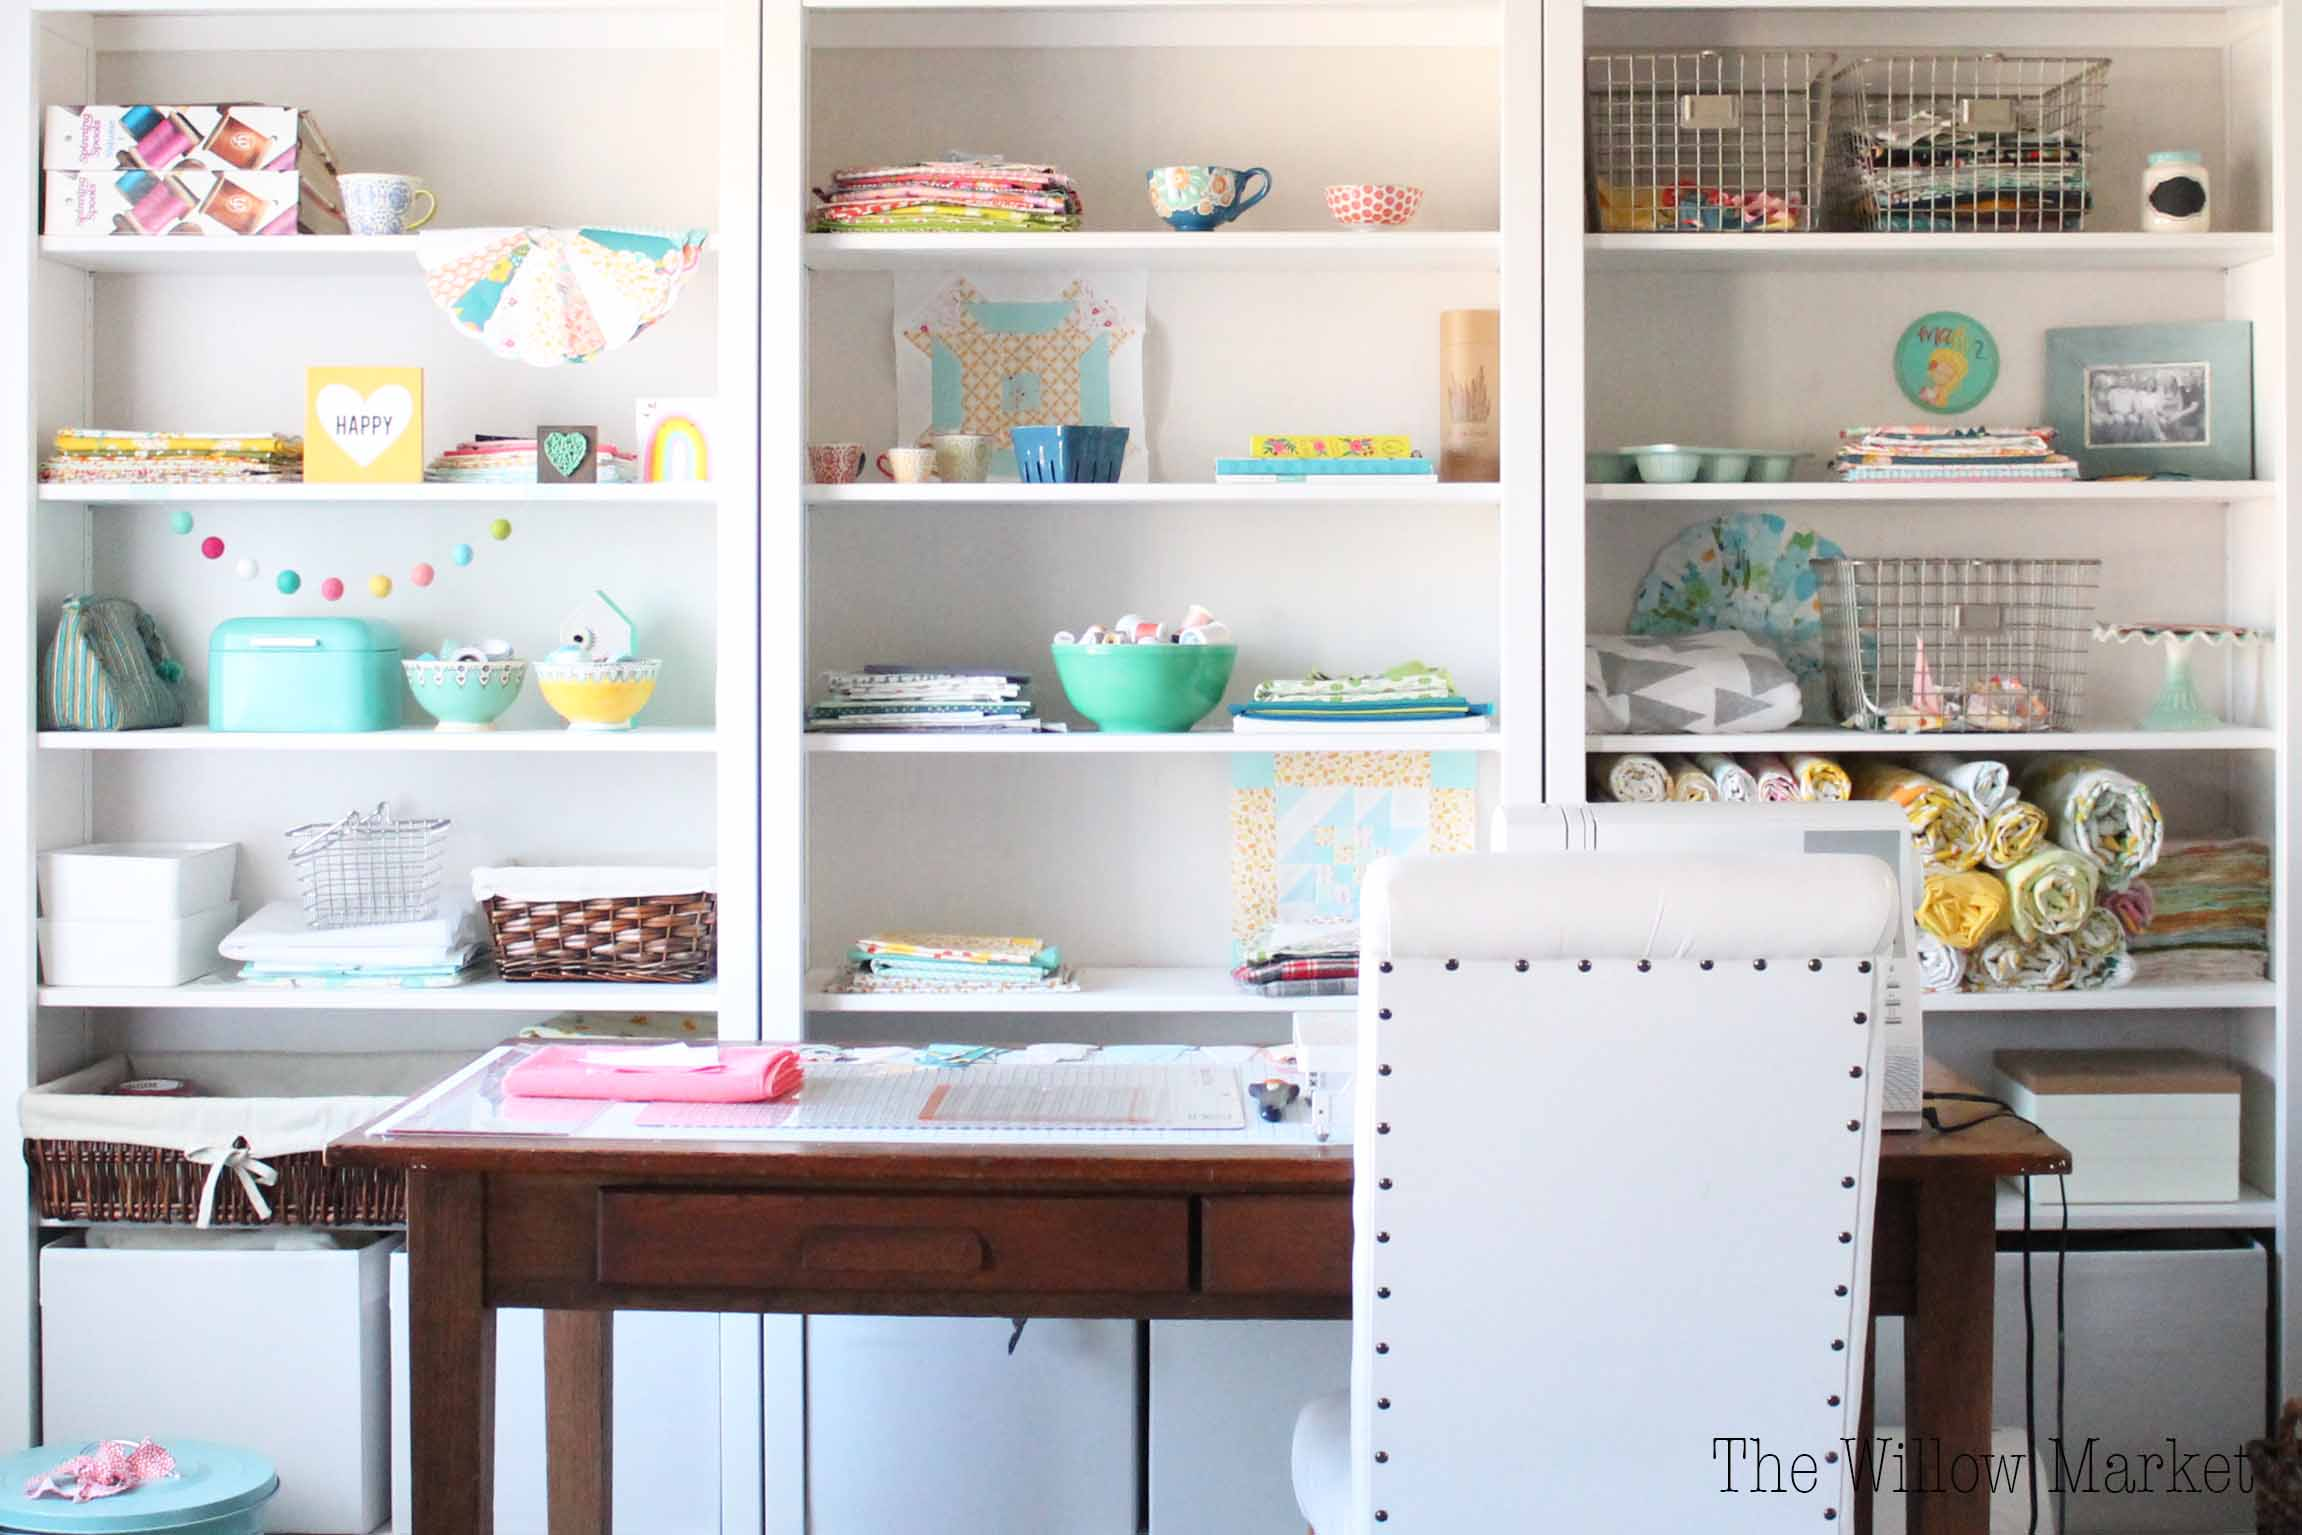 A Few Months Ago, I Posted The Before And After Pictures Of My Sewing +  Craft Space. It Was A Space That Severely Needed Some Organization.